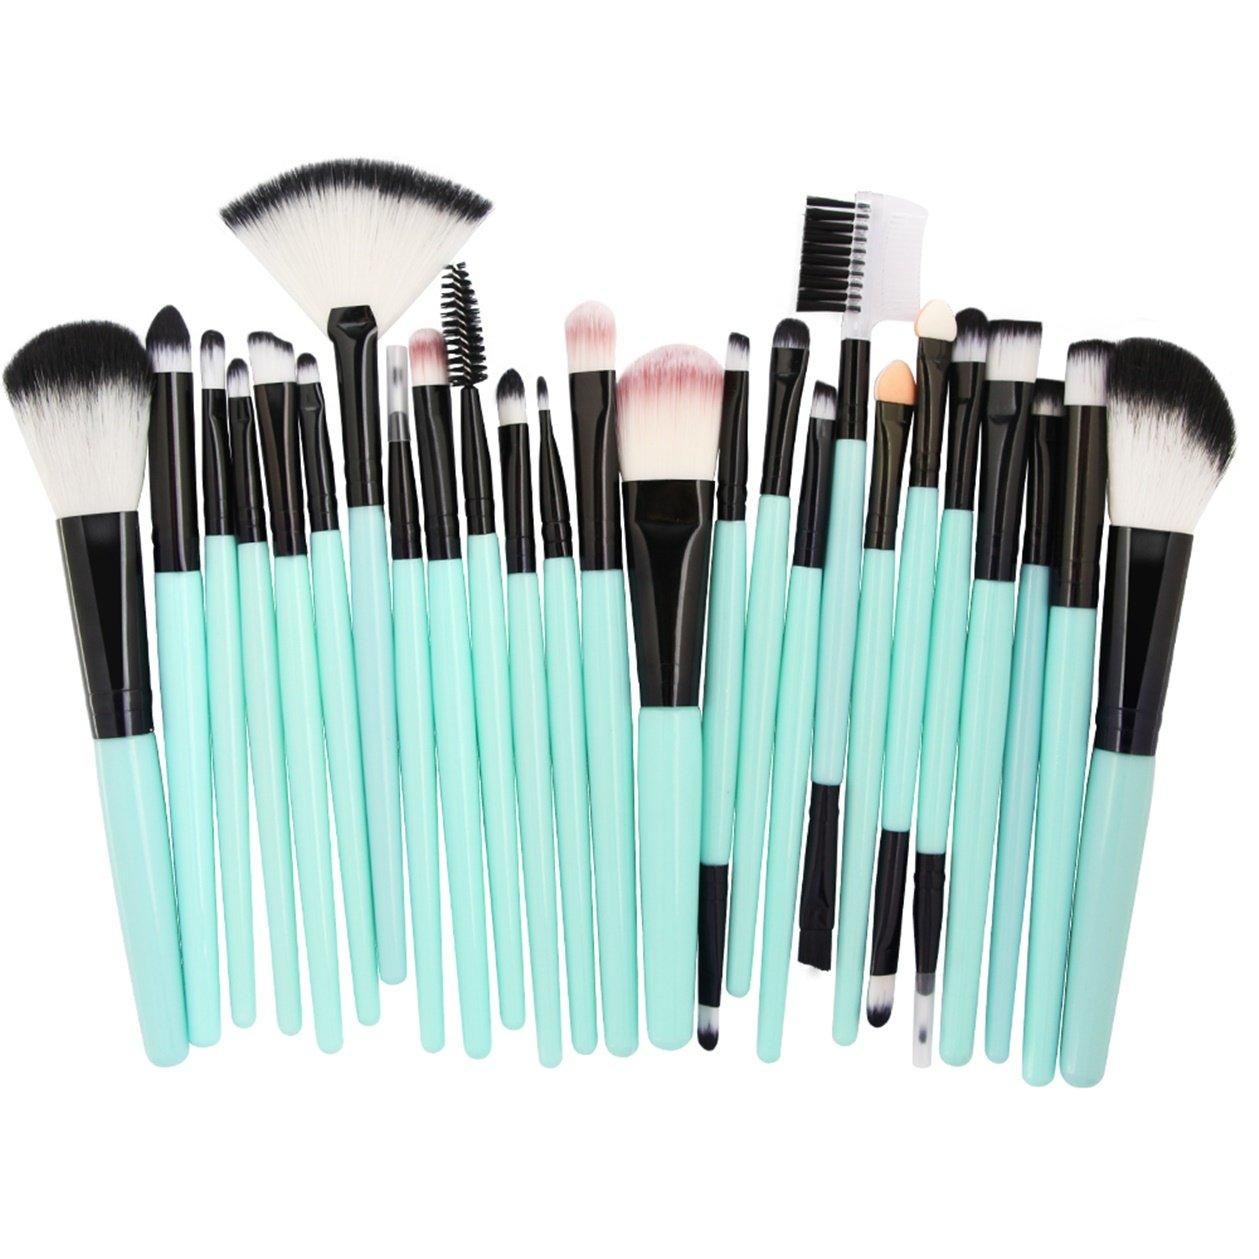 25pcs Professional Make Up Brush Set ( Light Blue&Black ) Philippines